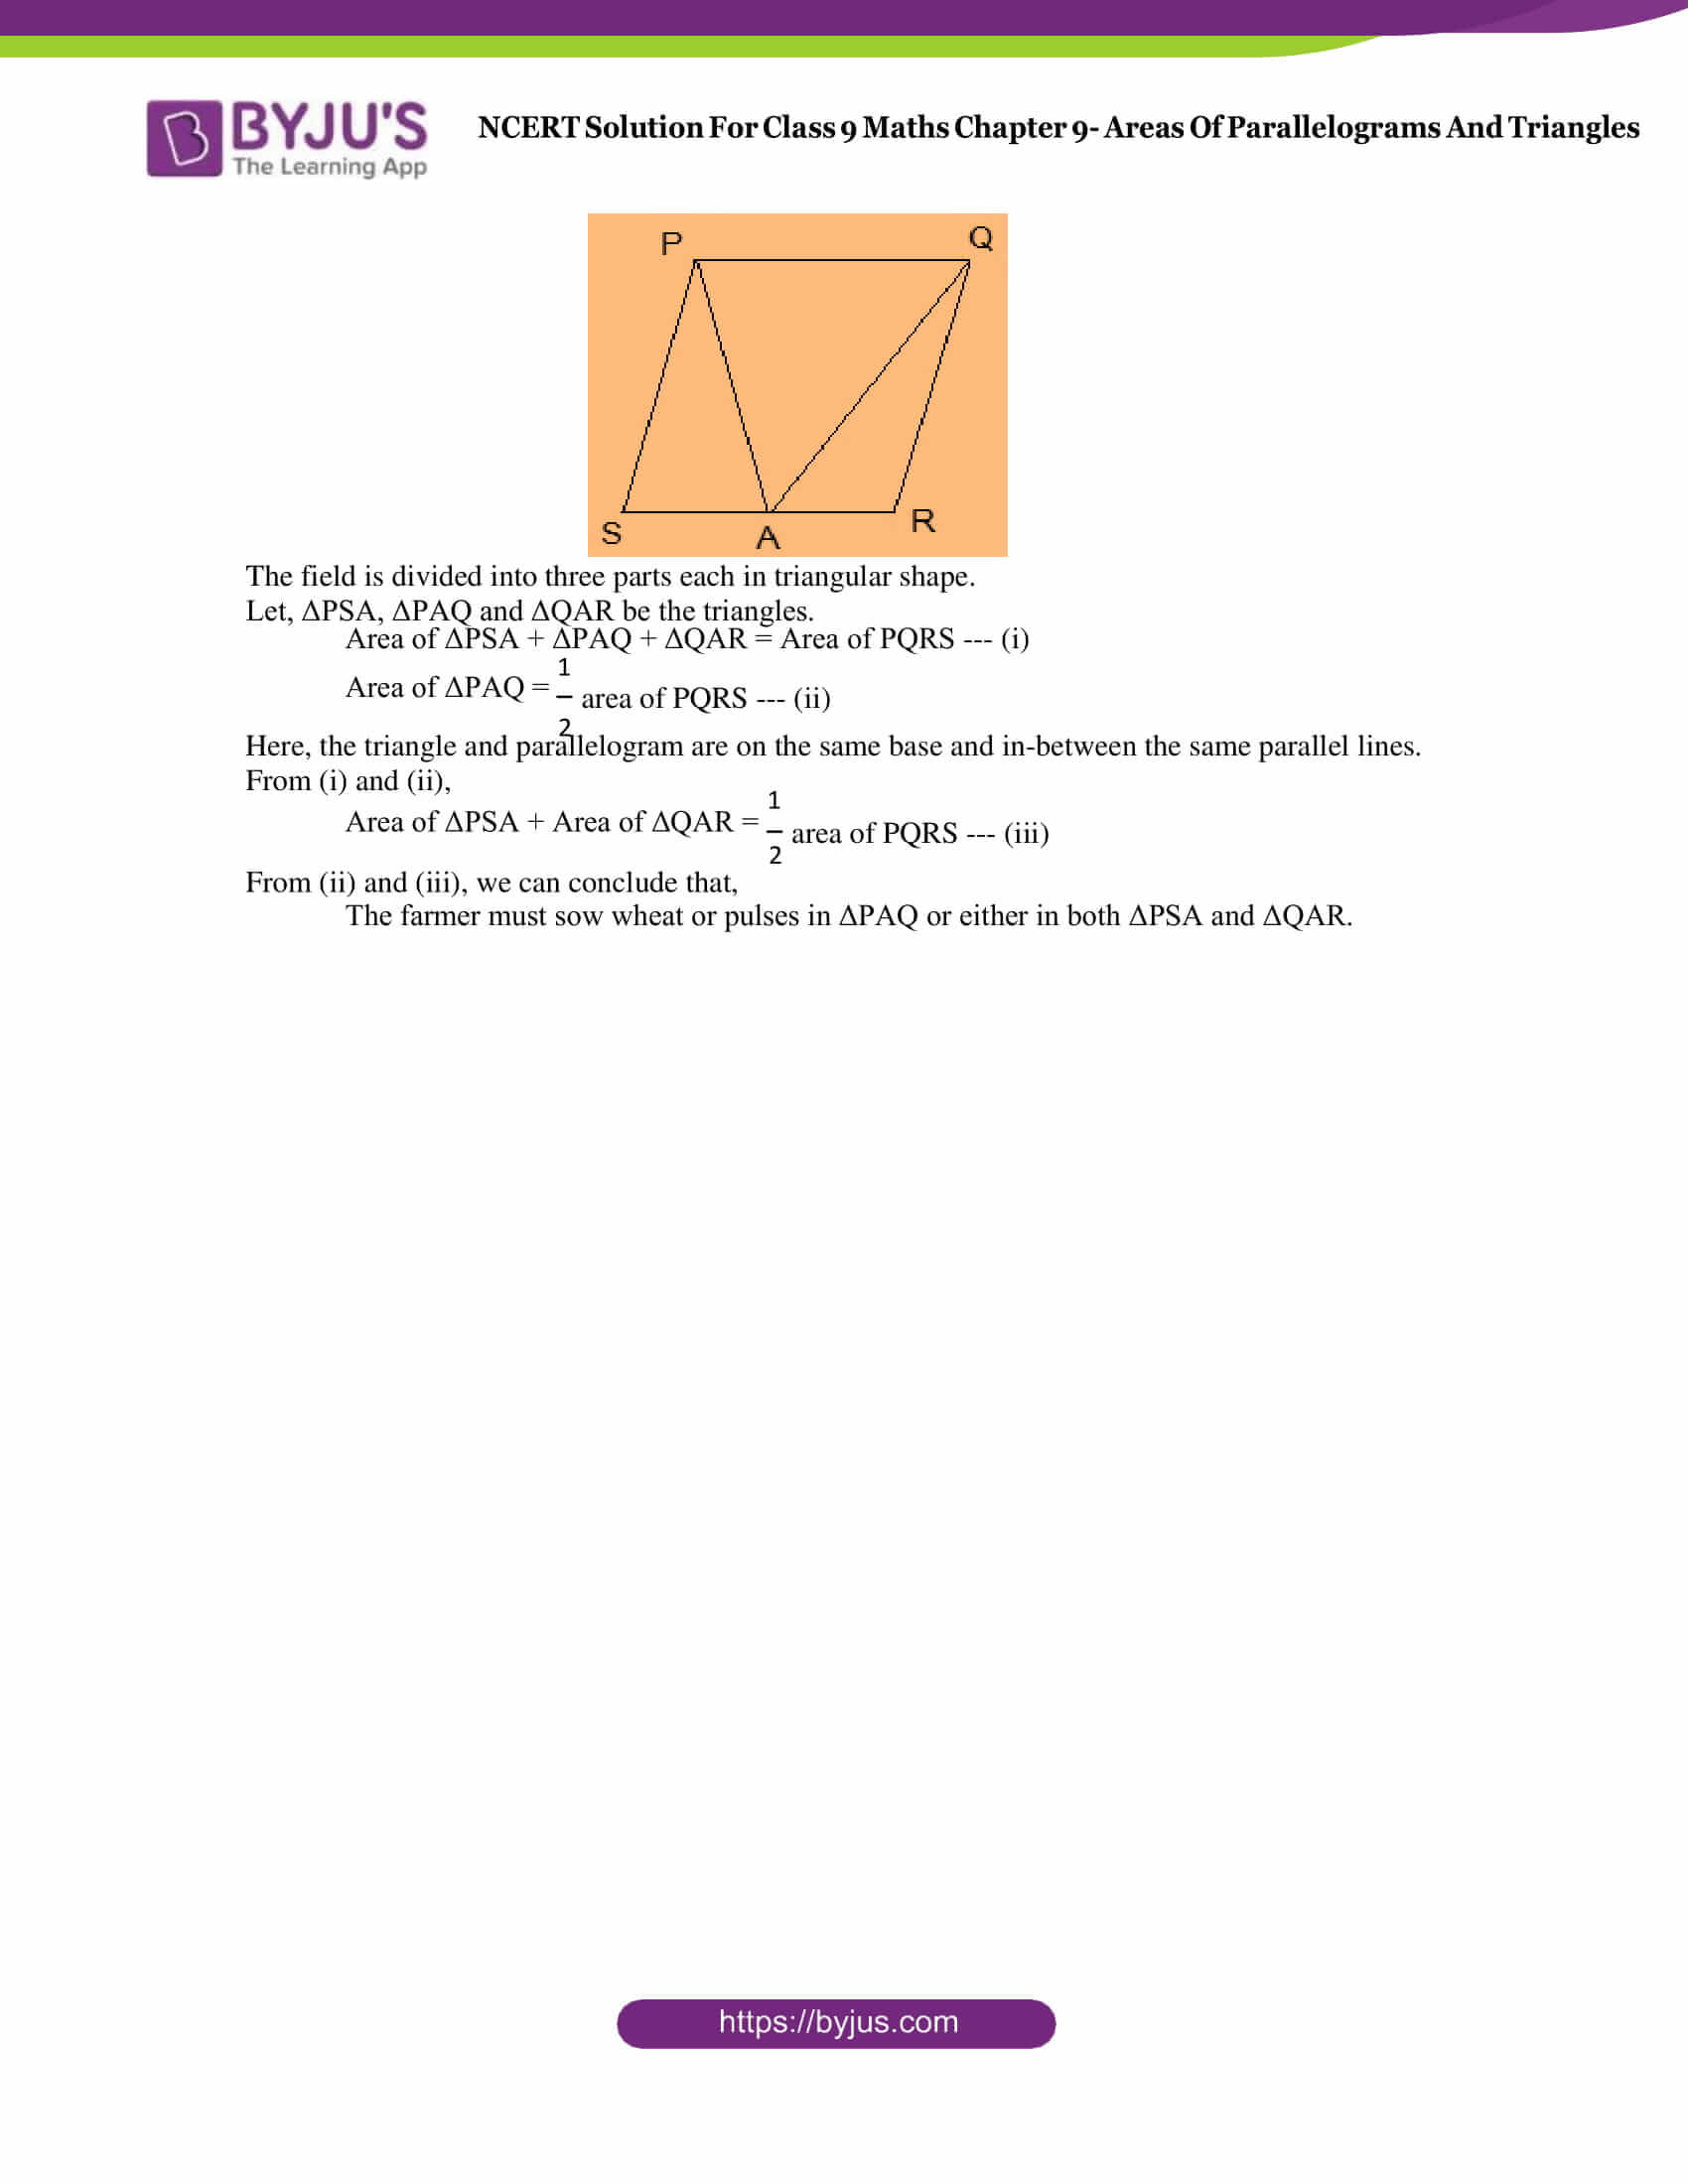 NCERT Solution Class 9 Maths Chapter 9 Areas of Parallelograms and triangles Exercise 9.2 Part 5